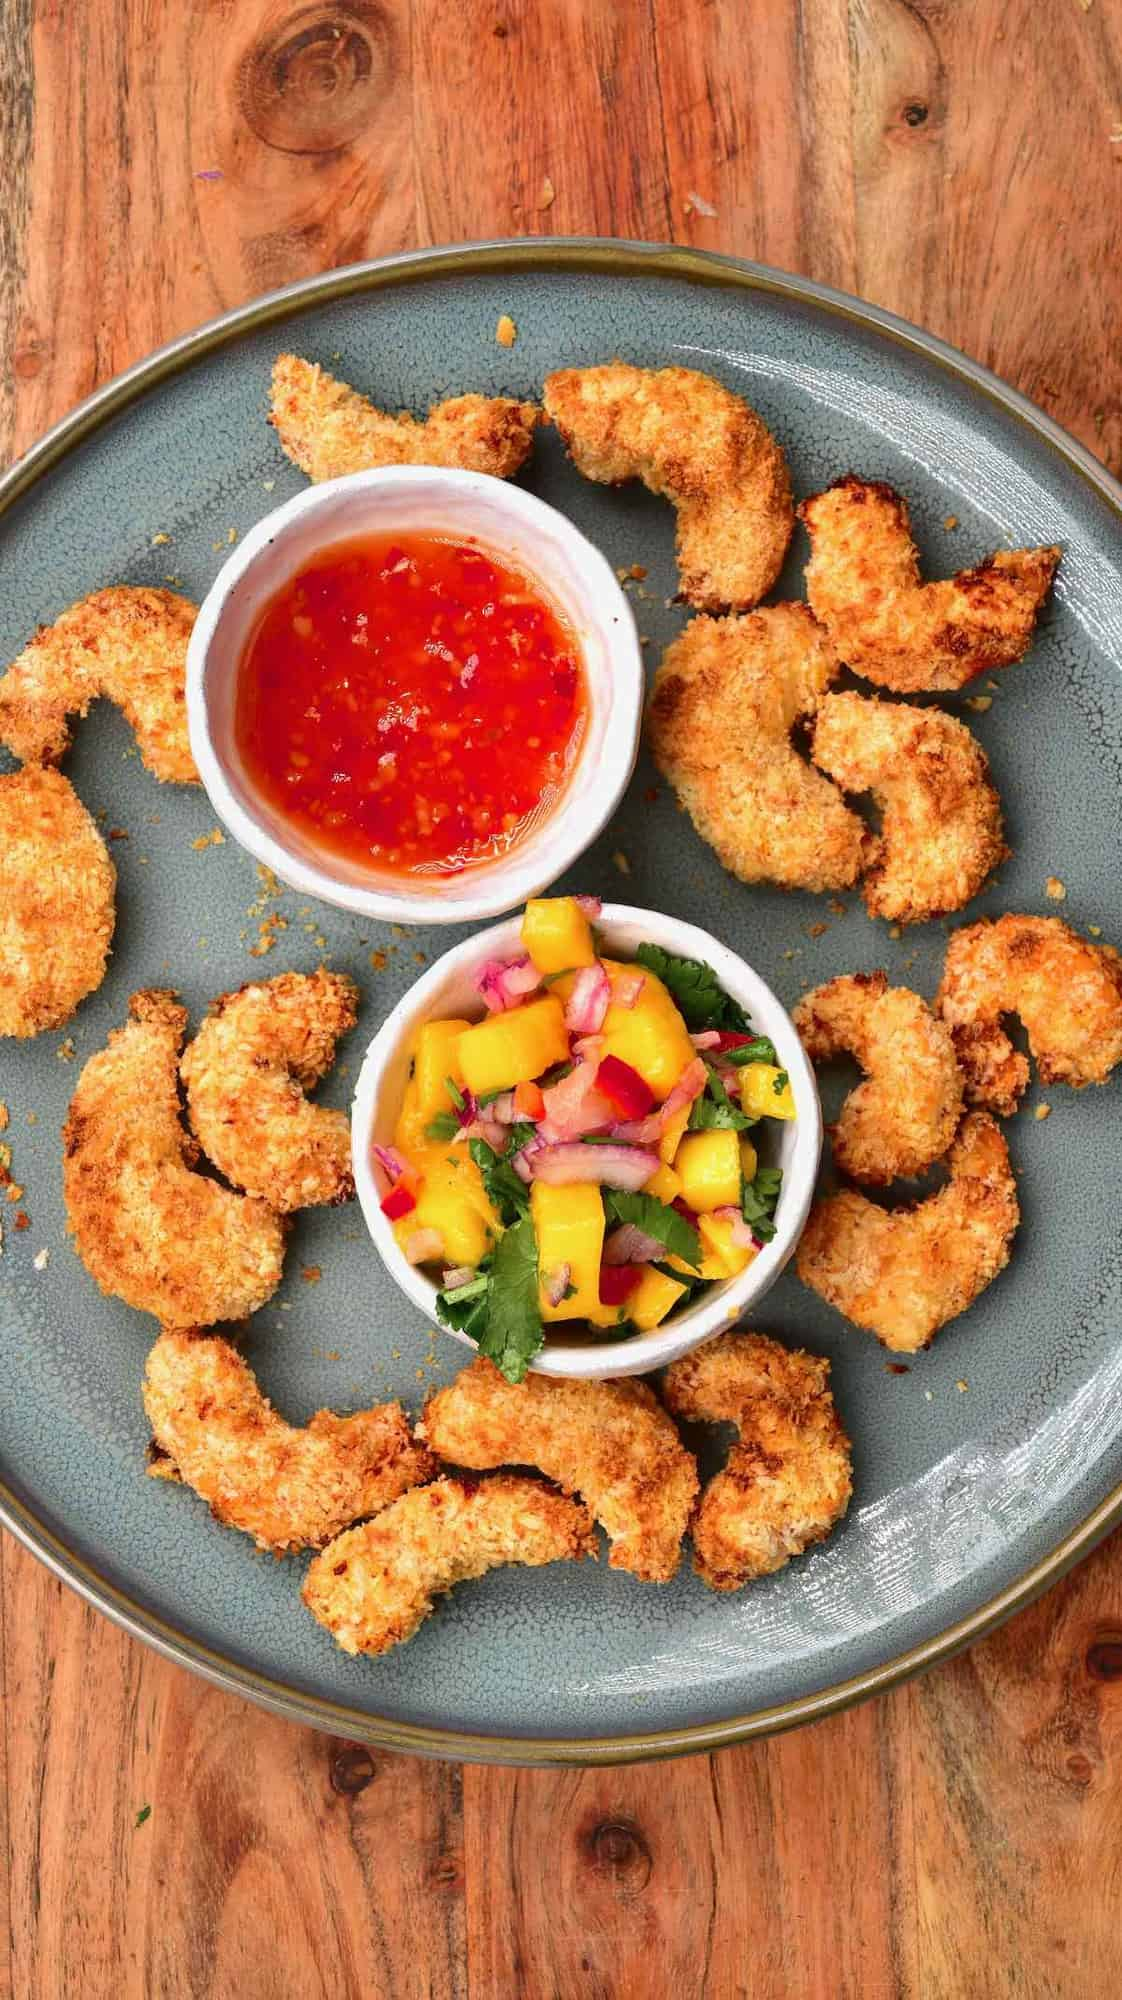 A plate with crispy baked shrimp and two small bowls with chili sauce and mango salsa